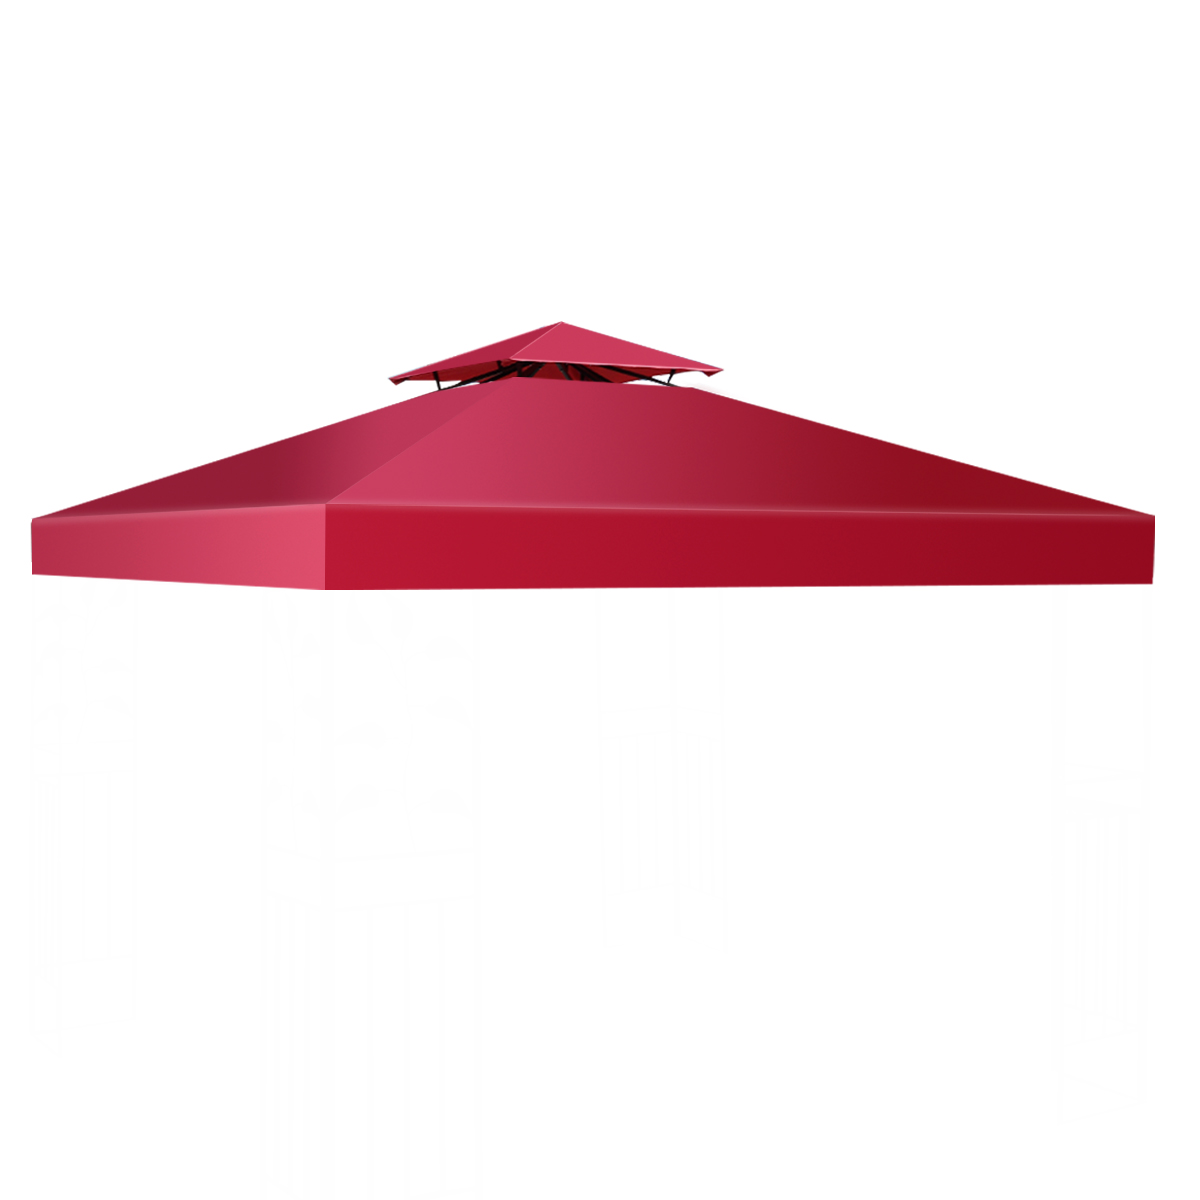 10-039-X-10-039-Gazebo-Top-Cover-Patio-Canopy-Replacement-1-Tier-or-2-Tier-3-Color thumbnail 59